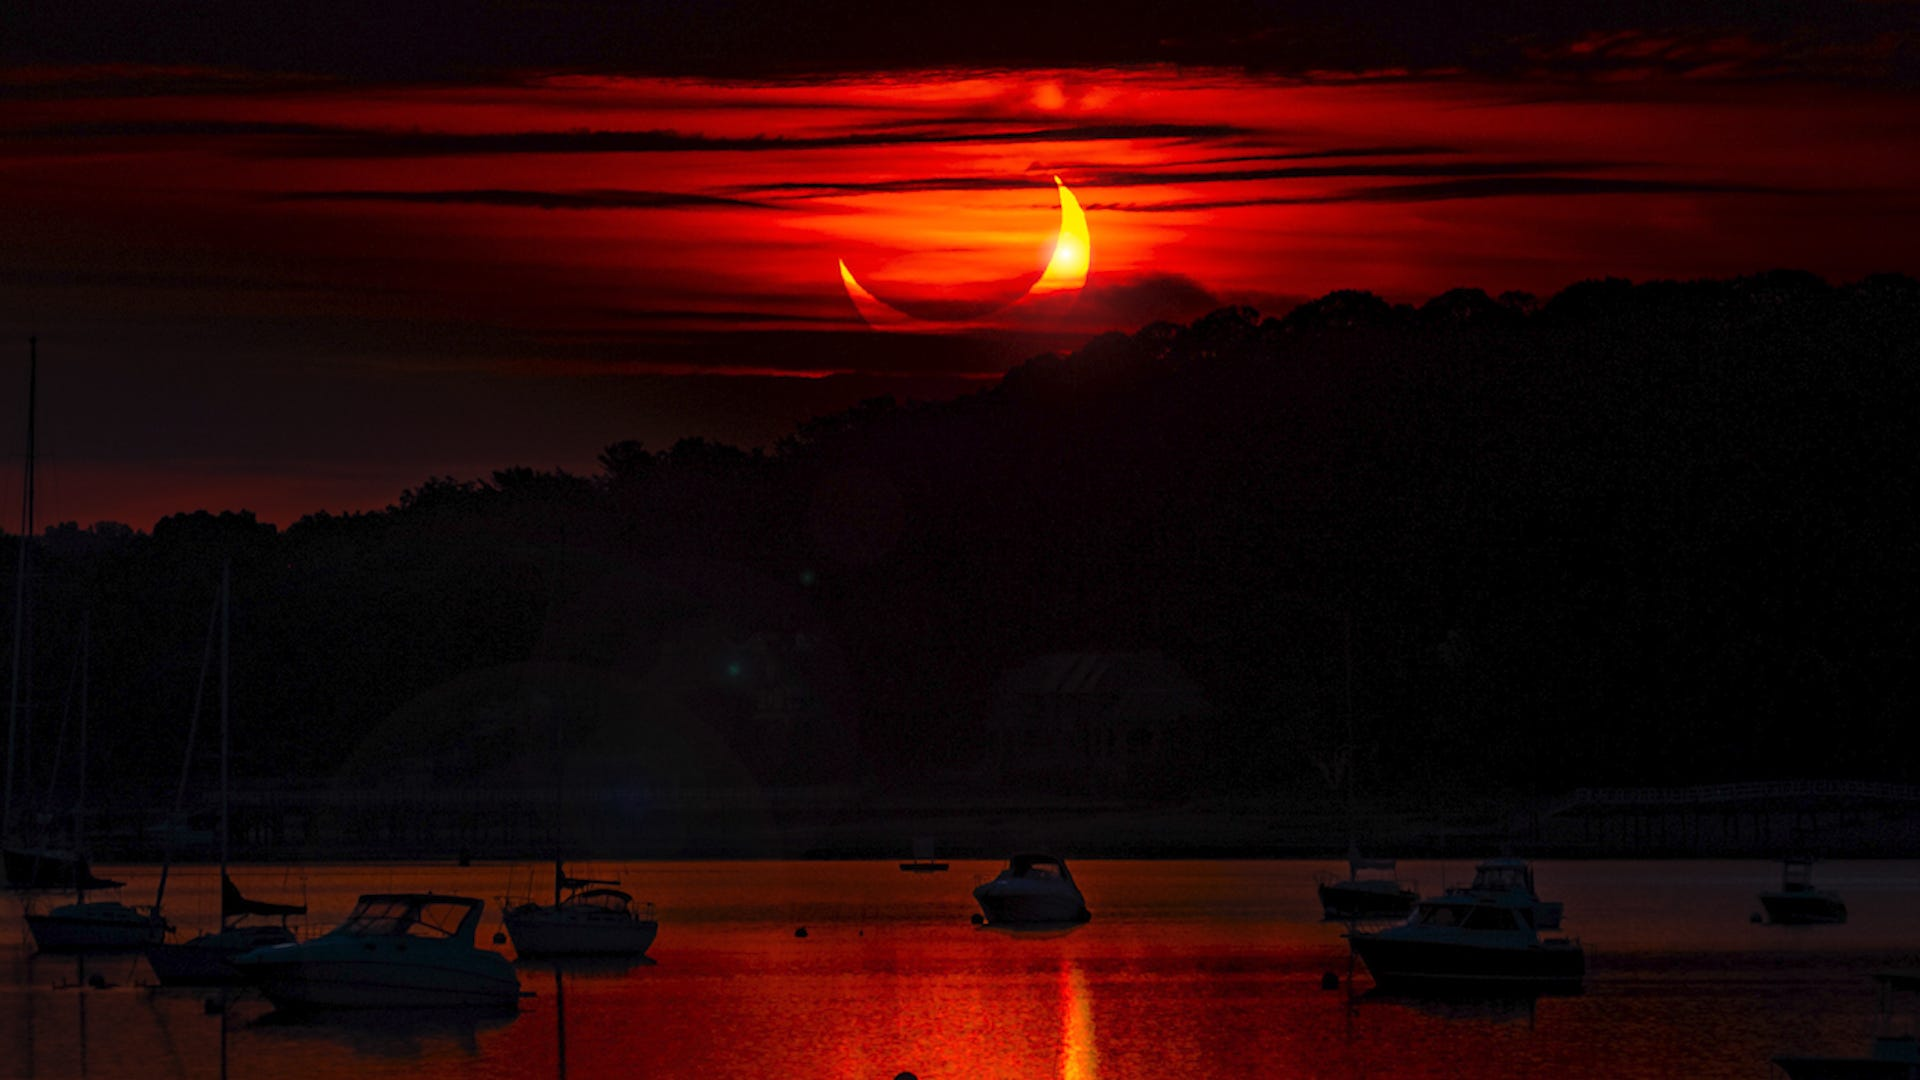 The annular 'ring of fire' solar eclipse captured on camera around the world